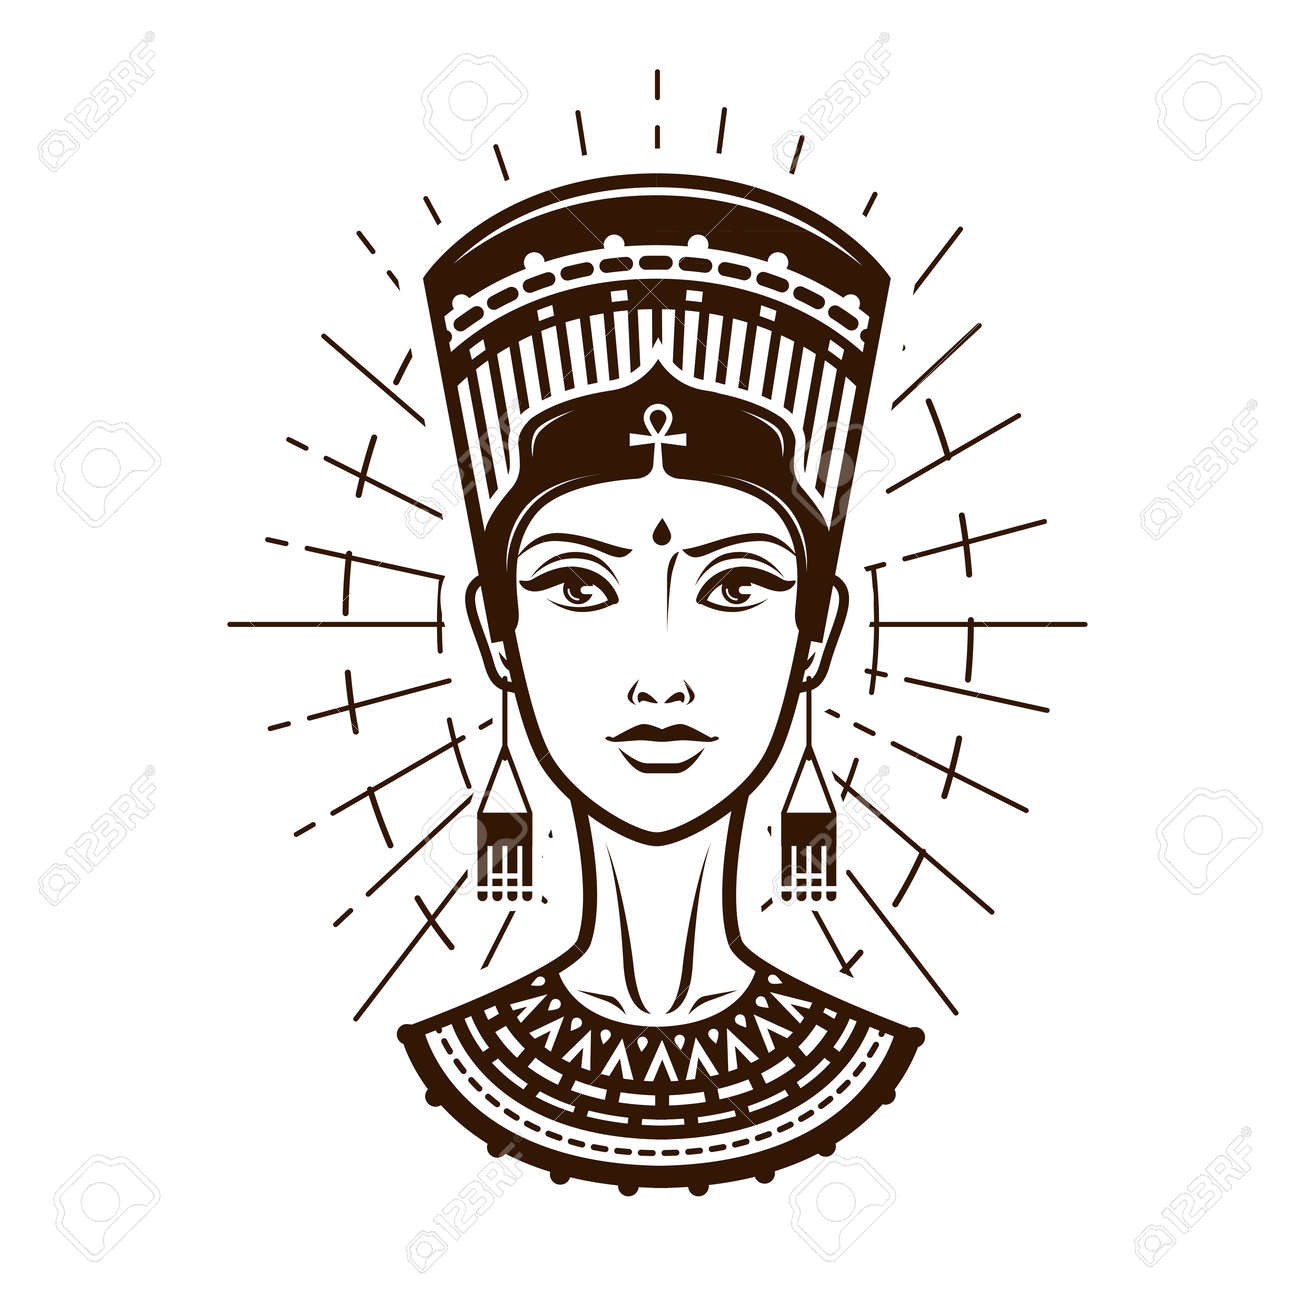 Portrait of beautiful young woman, girl in ethnic outfit. Egypt, Africa logo or label. Vintage vector illustration - 83935924